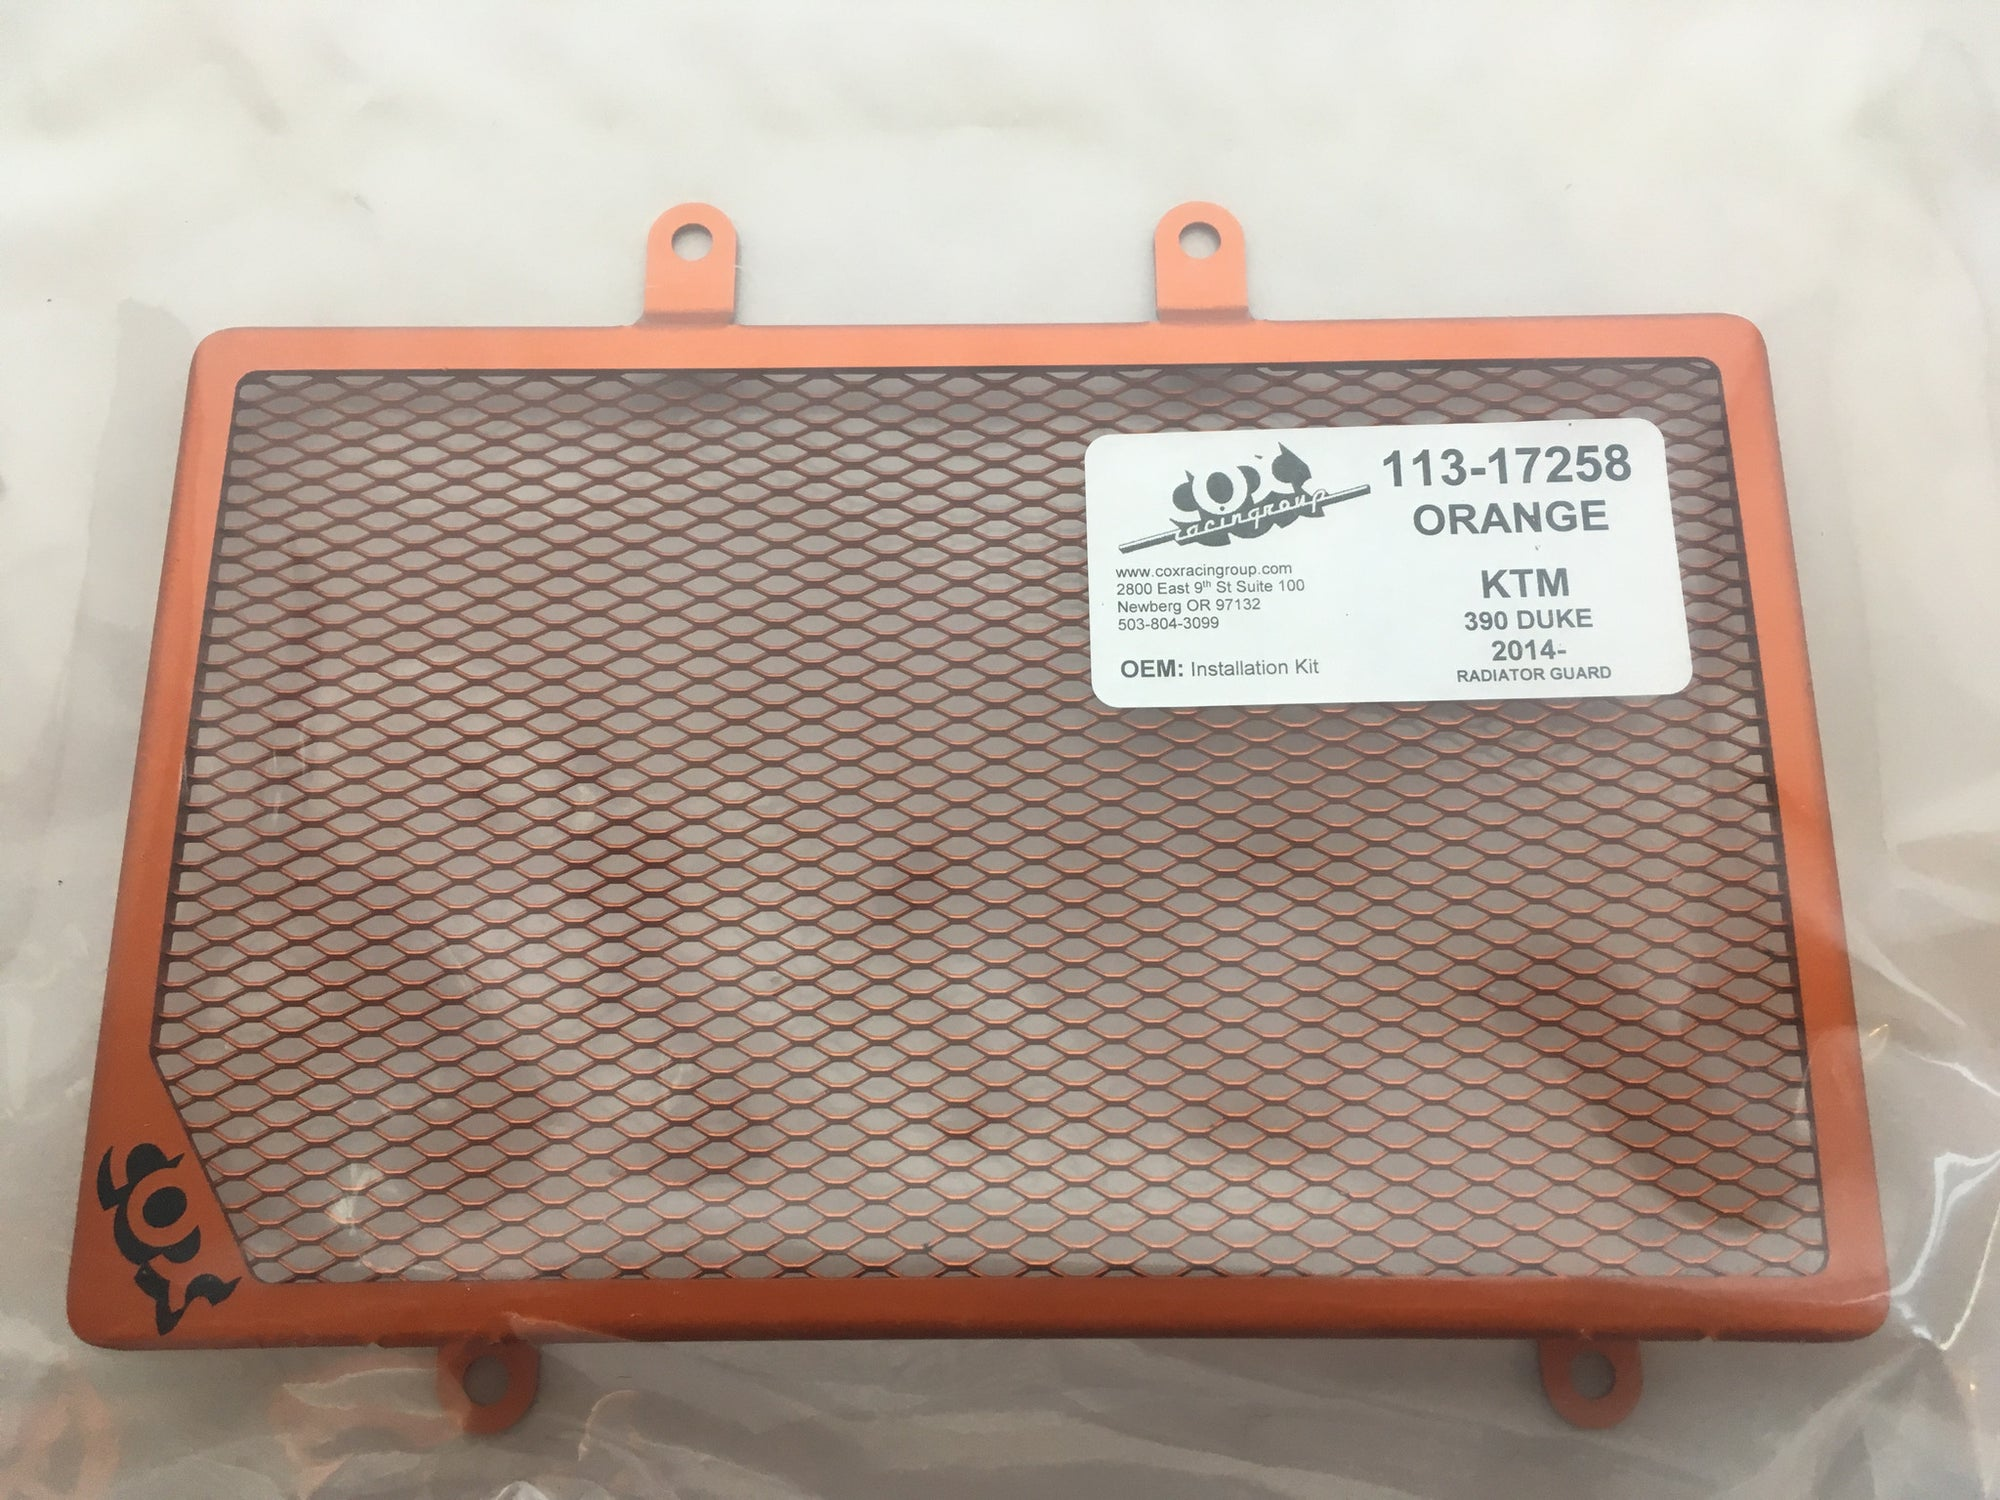 Cox's Racing Radiator Guard KTM 390 Duke 2014-2016 - KTM Twins